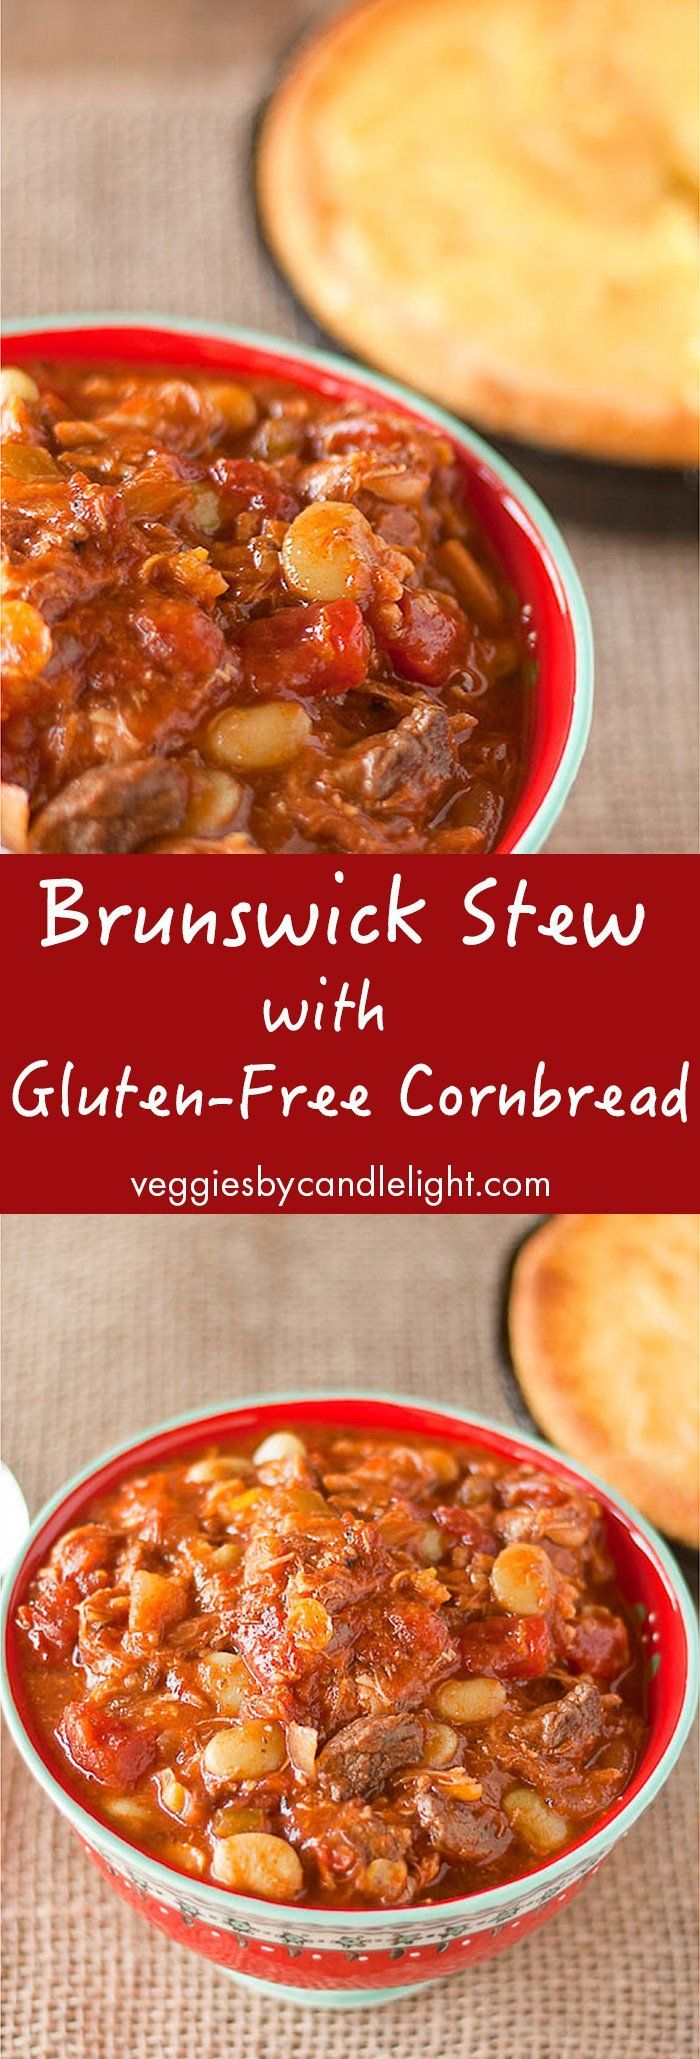 Brunswick Stew with Gluten-free Cornbread - Brunswick stew is a traditional Southern favorite. A thick, tomato-based stew filled with veggies and meat and this version is hard to beat!